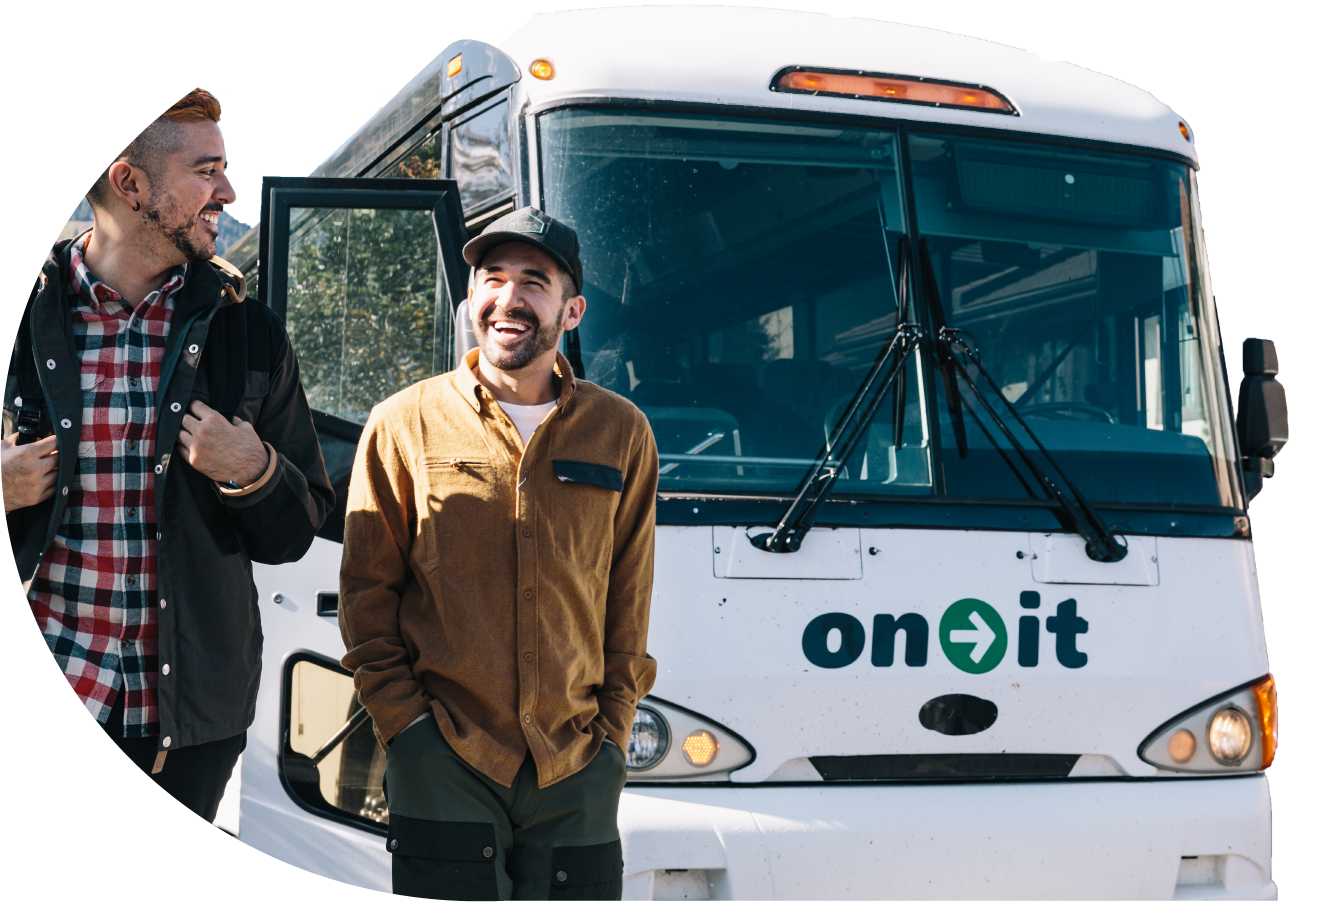 Subscribe for Banff & Canmore Service Alerts